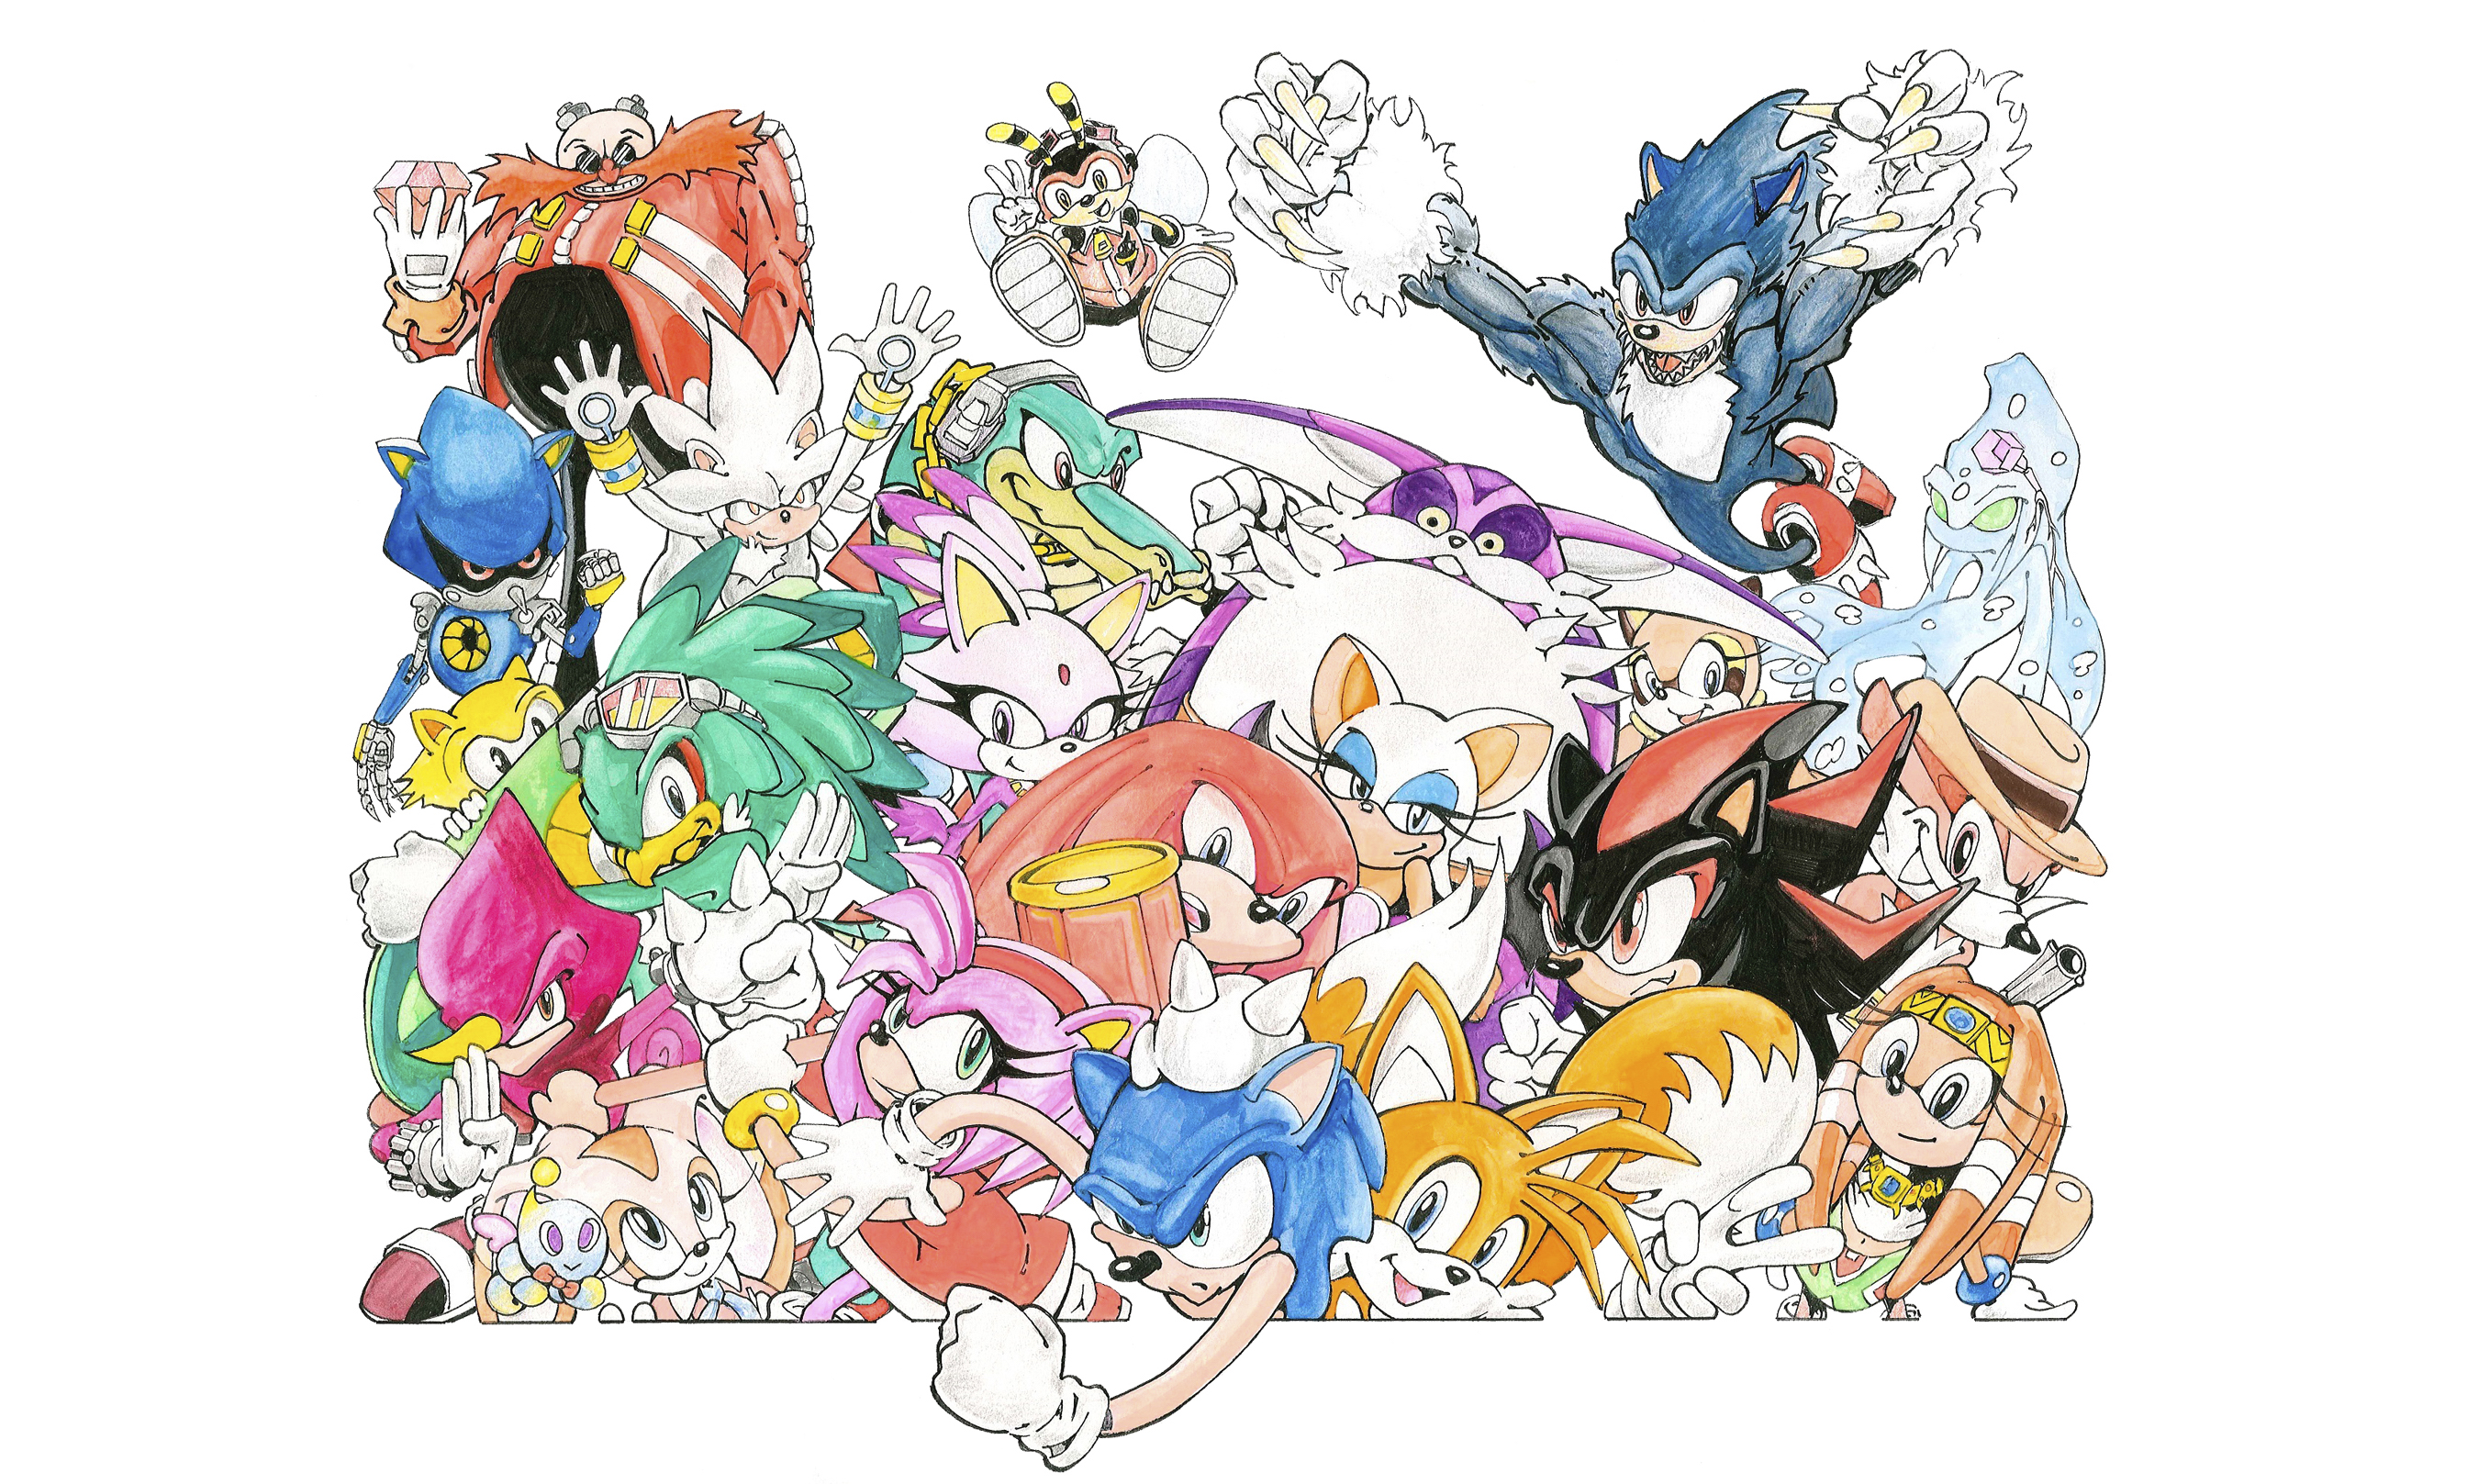 Sonic and friends crowd around one another